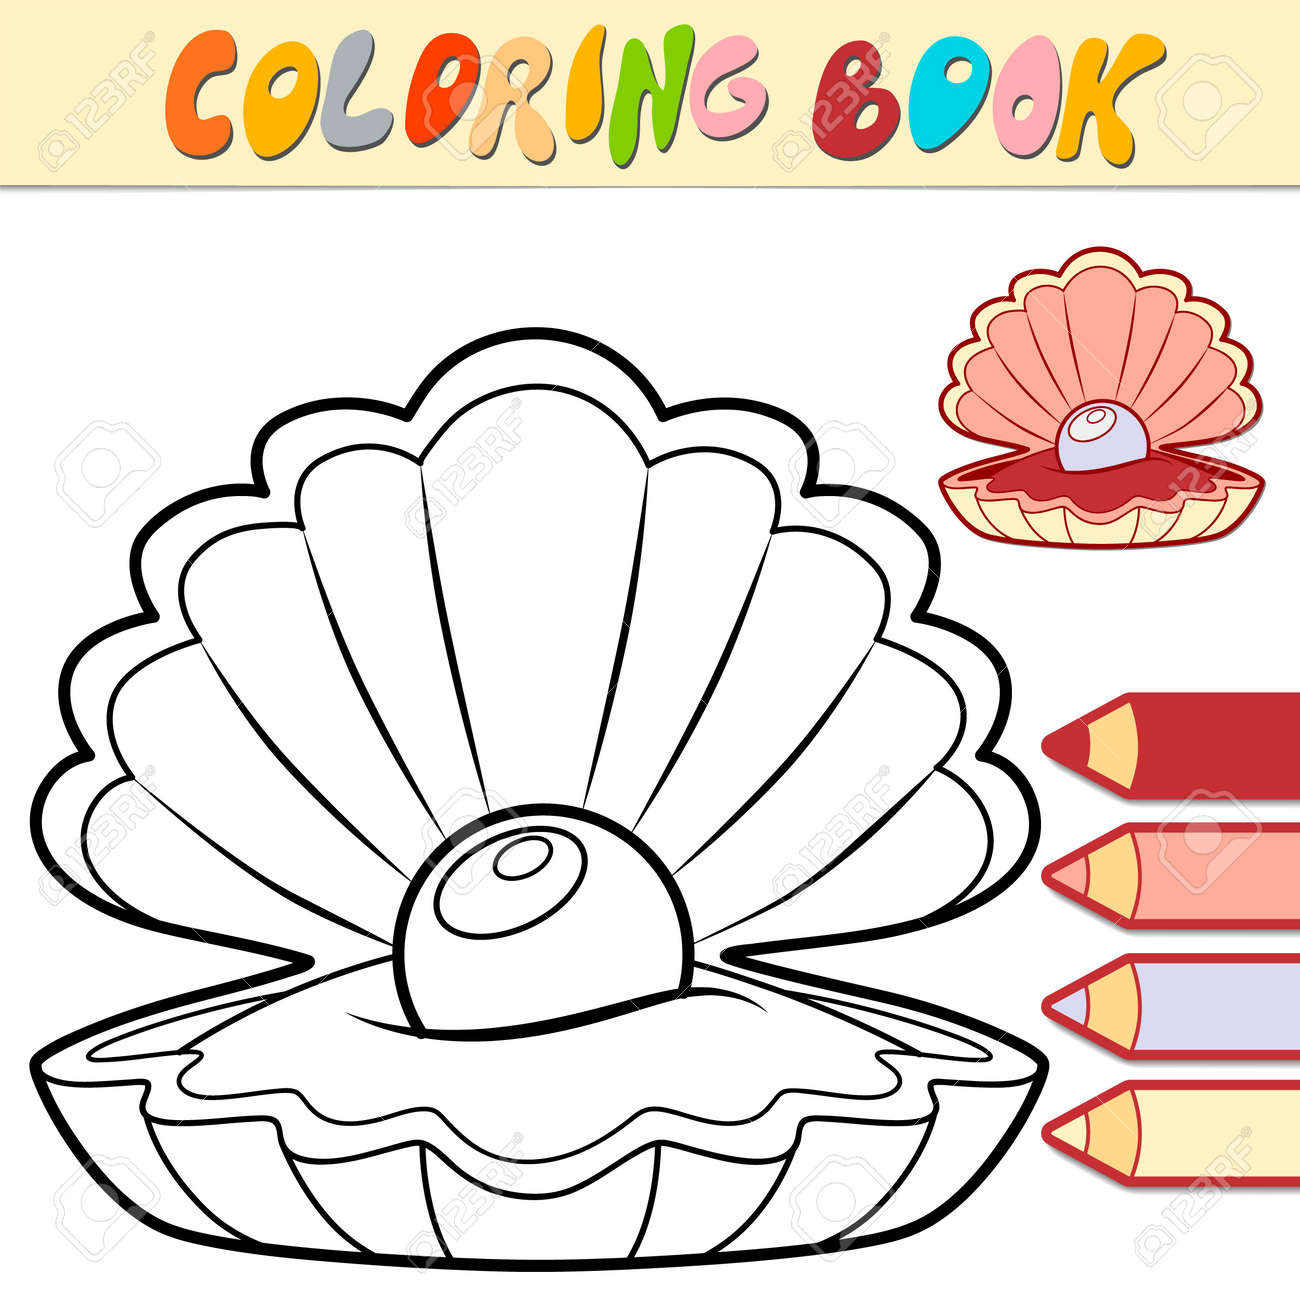 Coloring book or page for kids. shell black and white vector illustration - 168778525